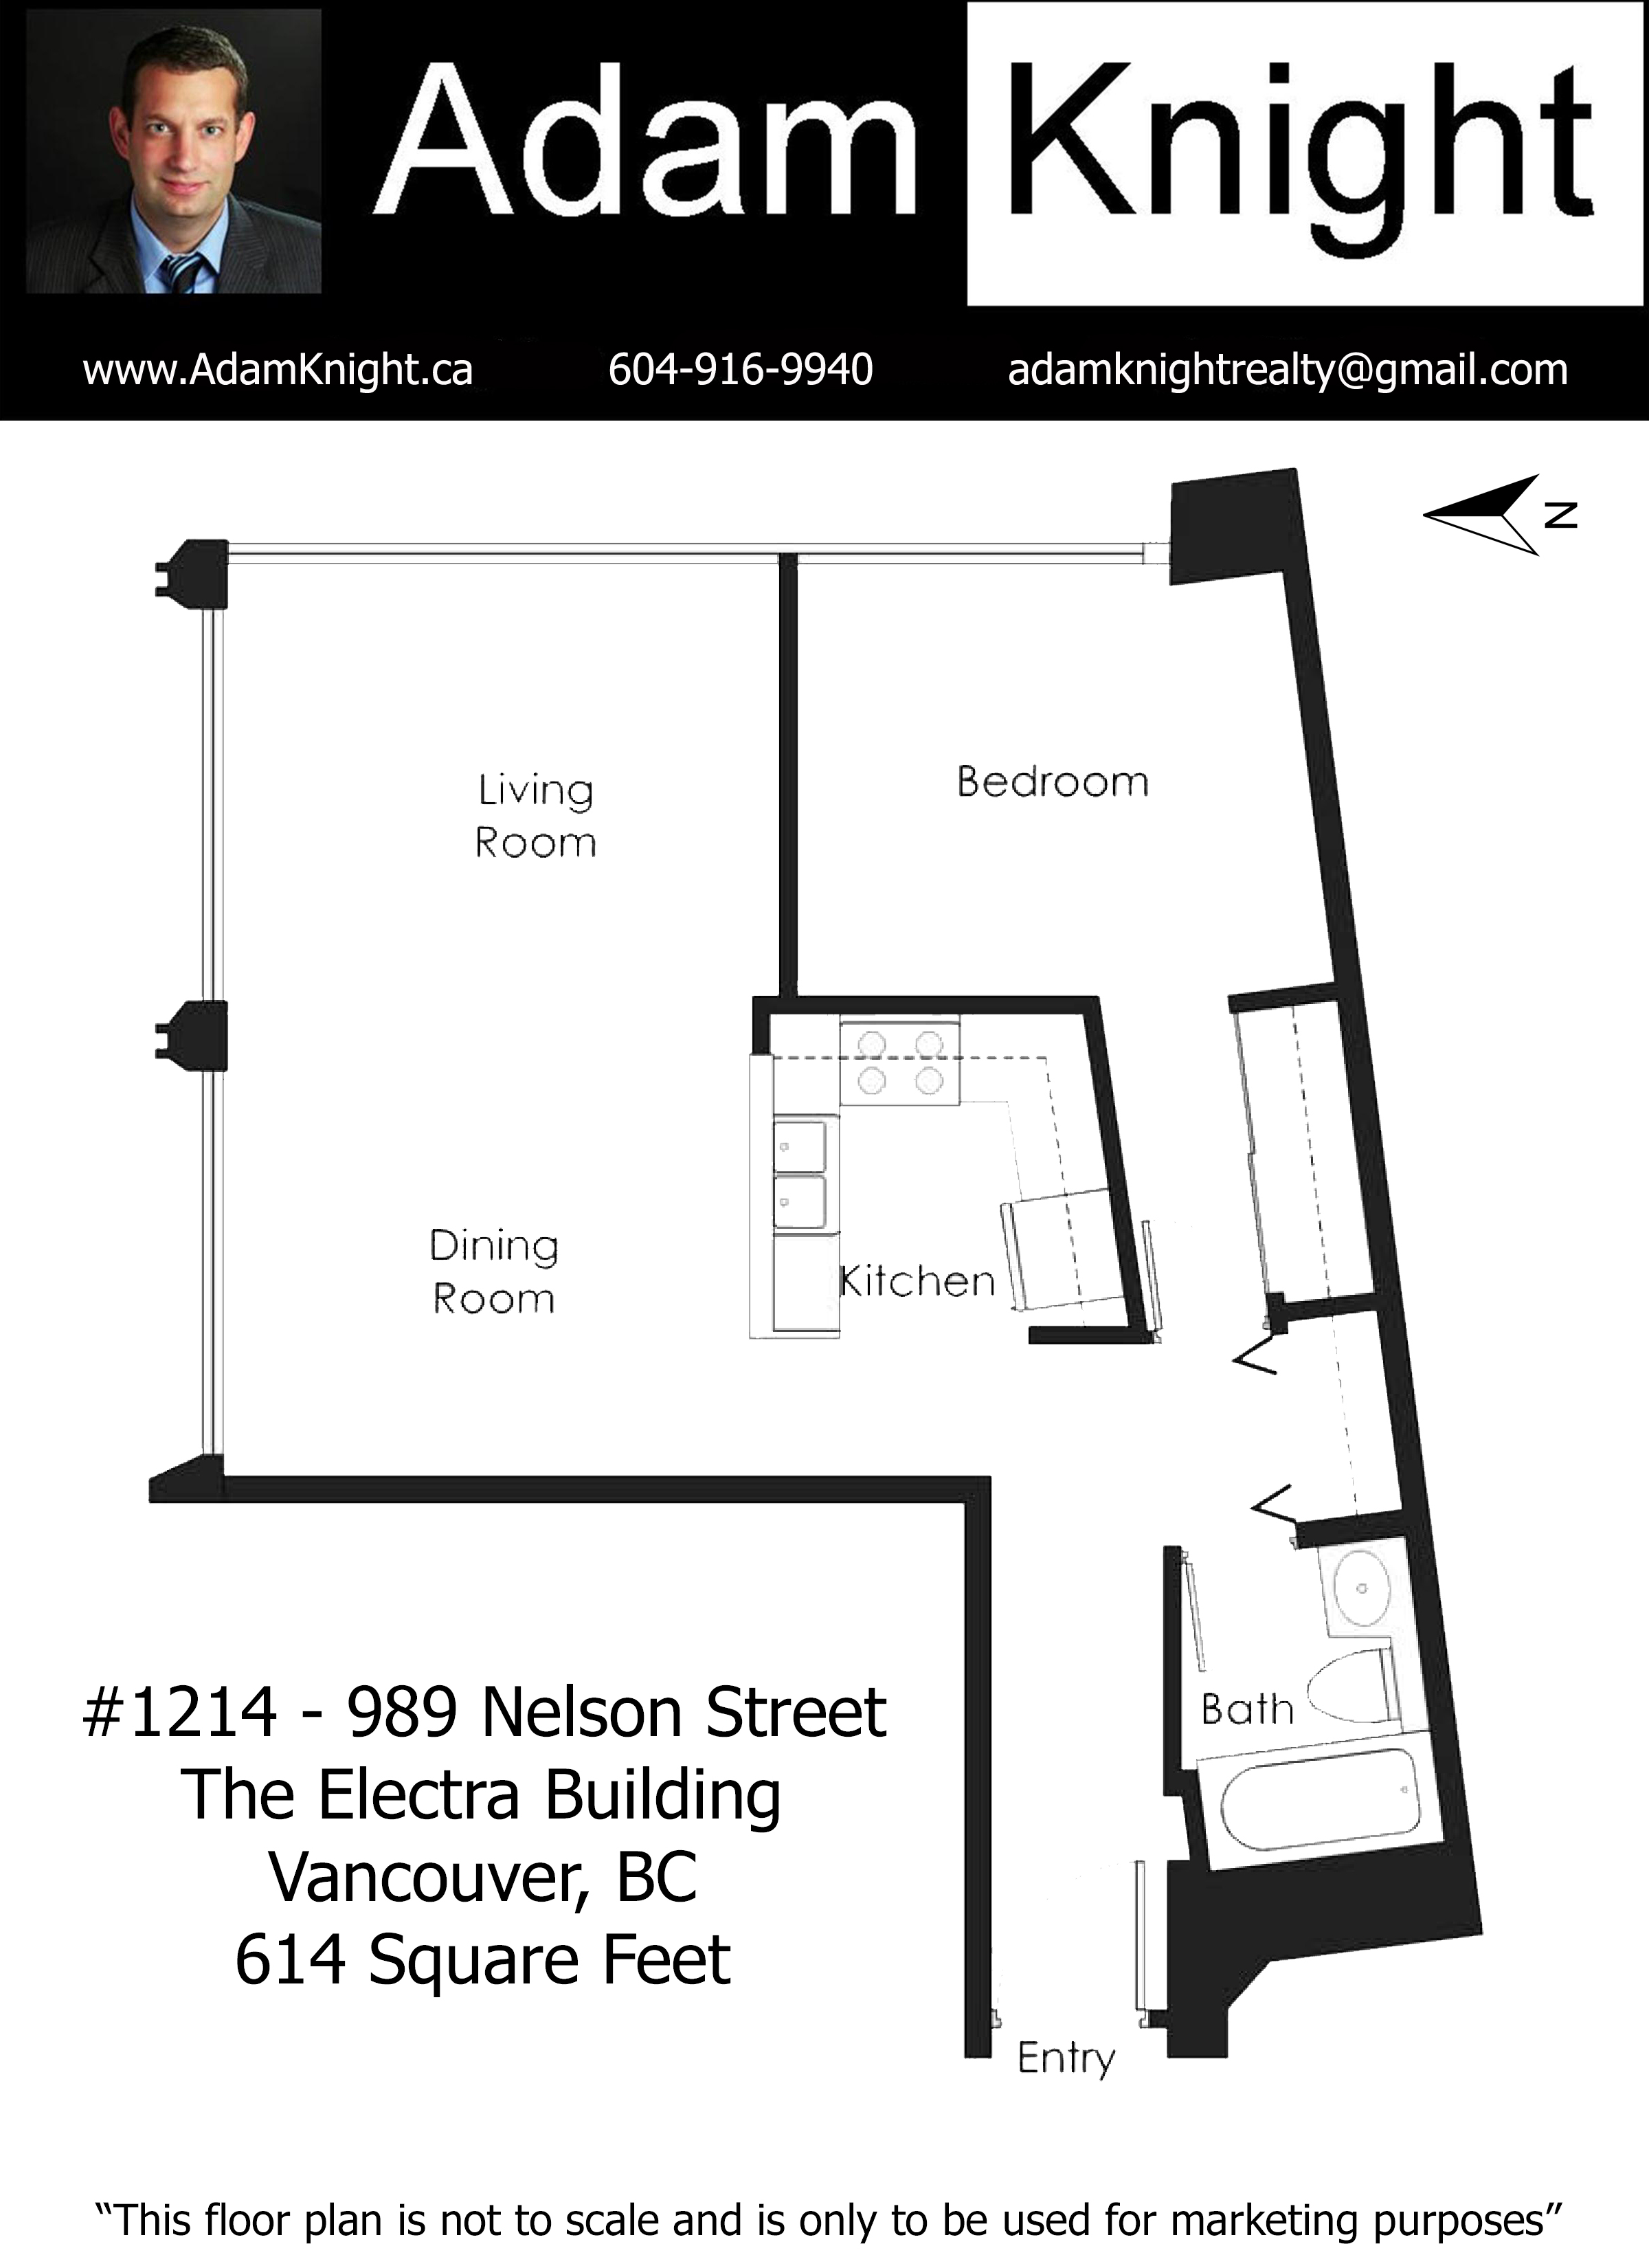 floor plan copy 2.jpg